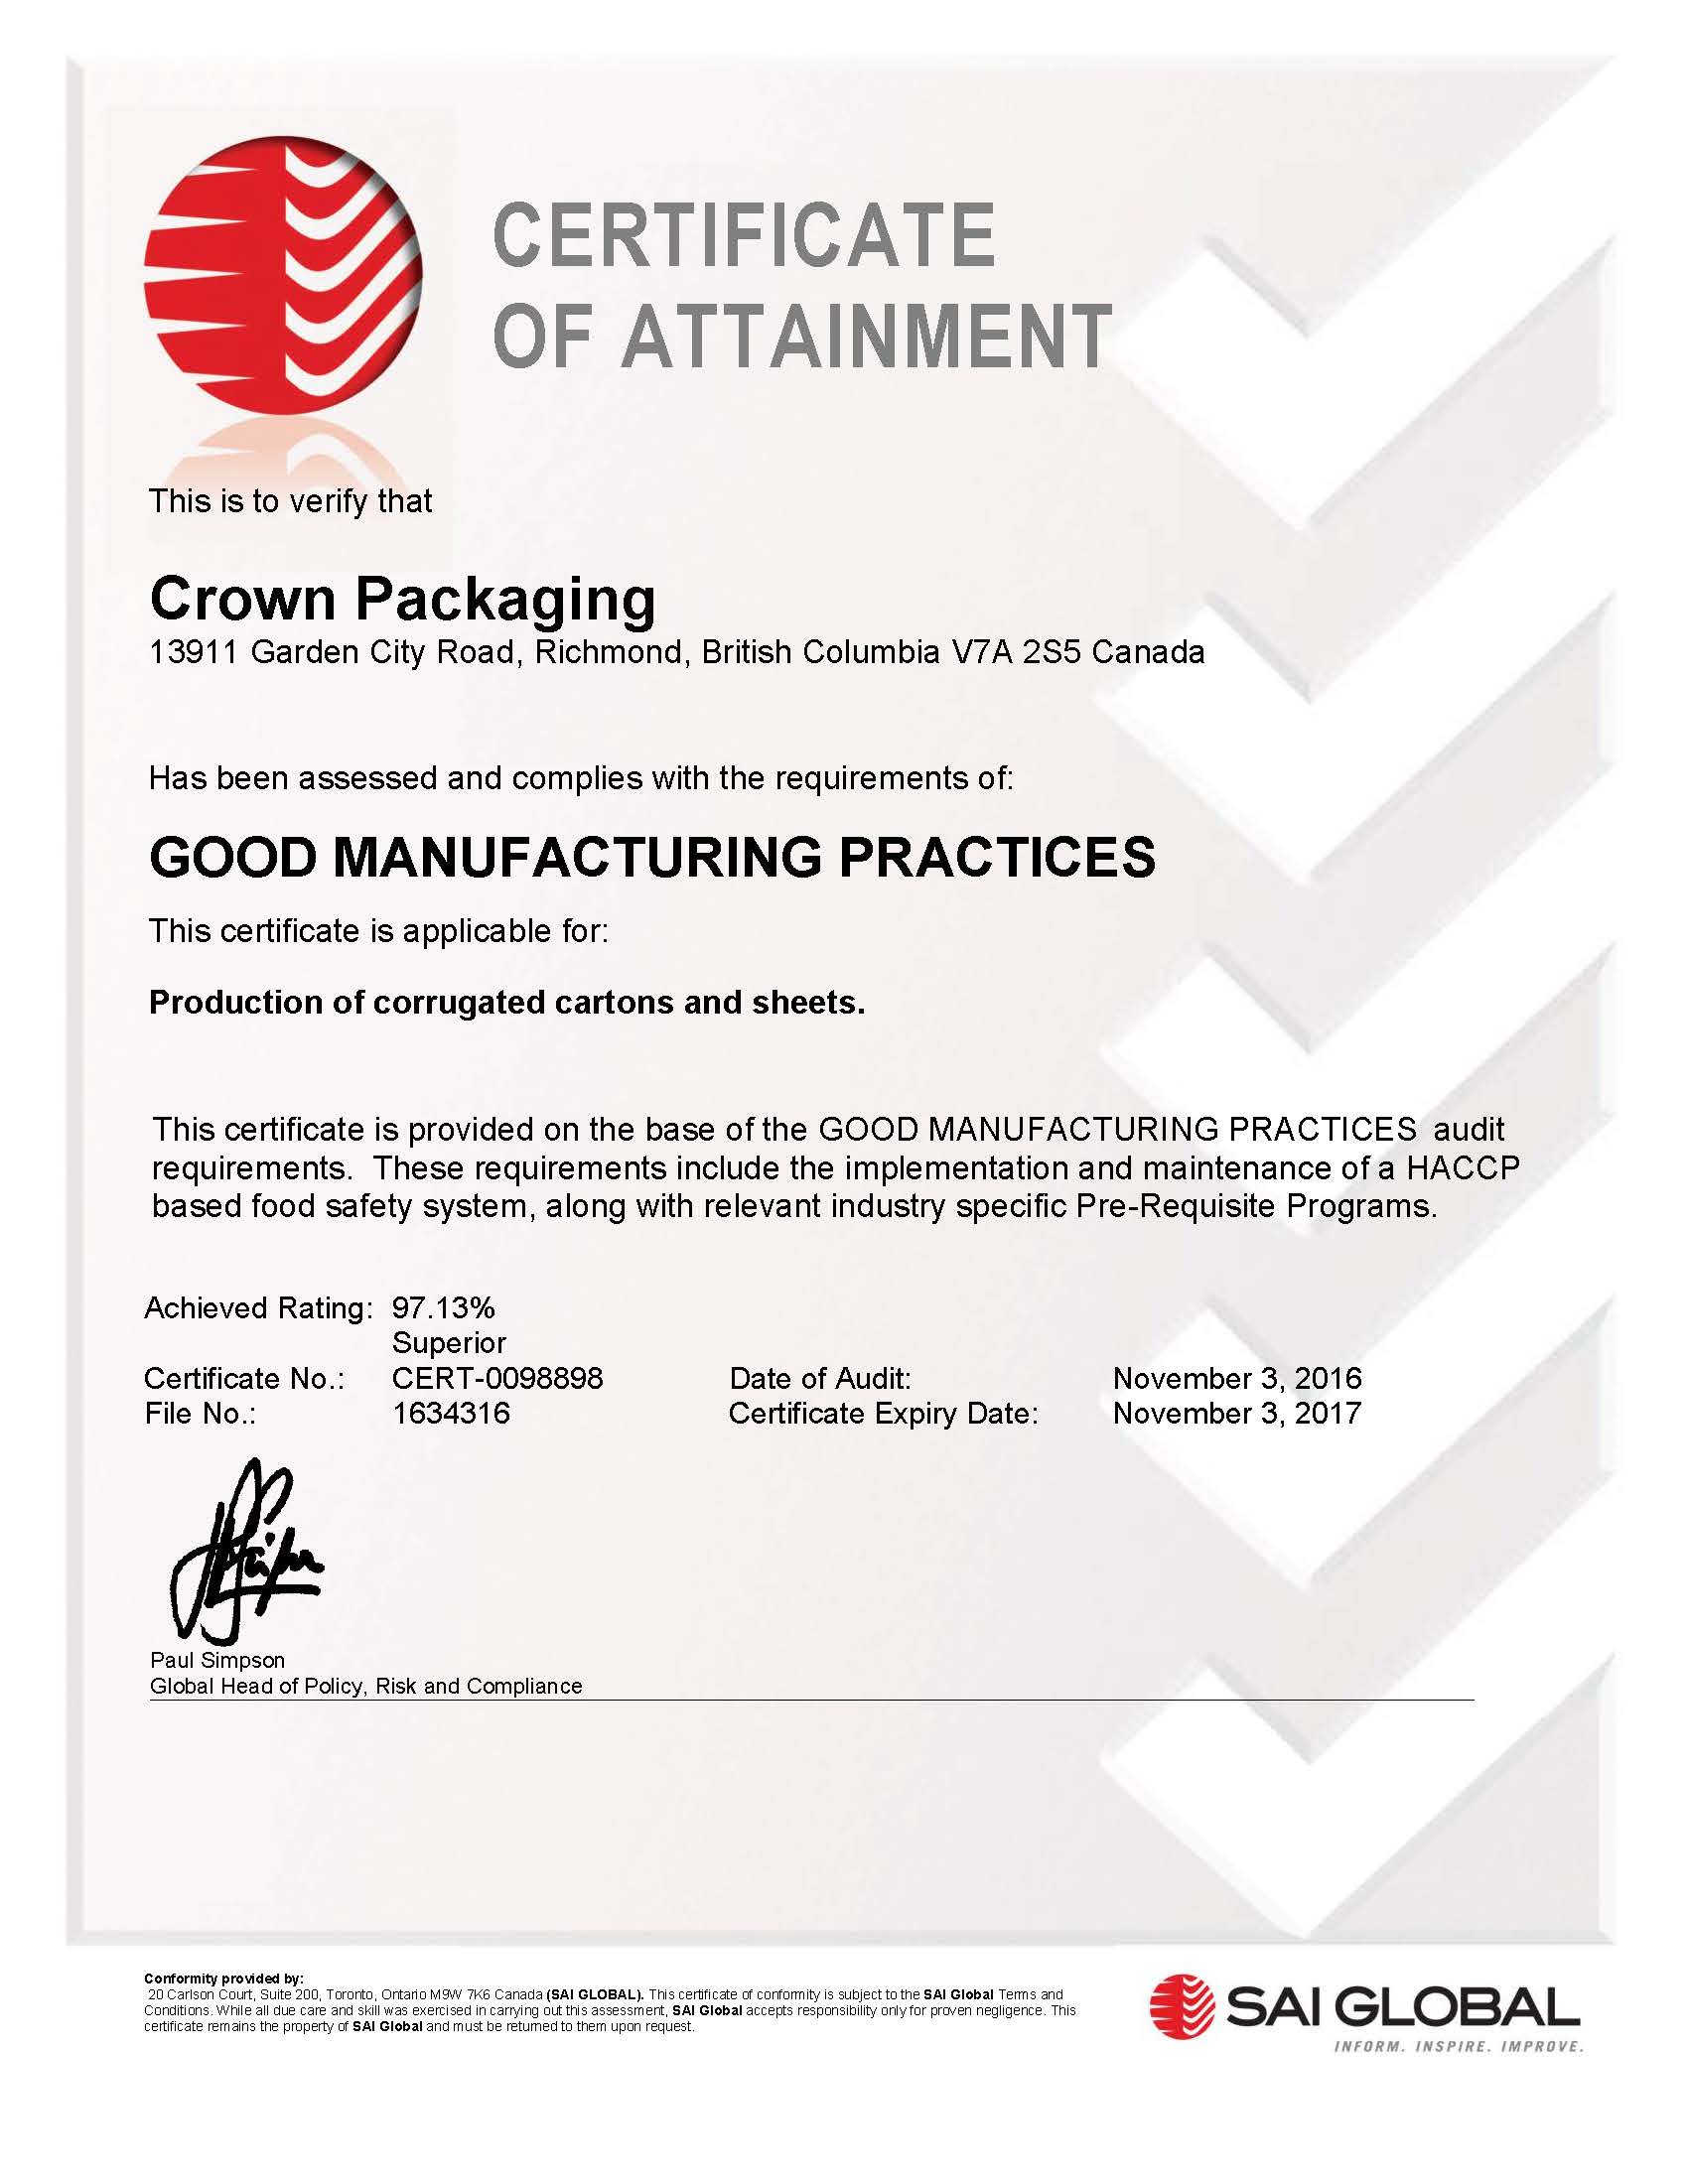 cert-2016-crown-packaging-file-1634316-01